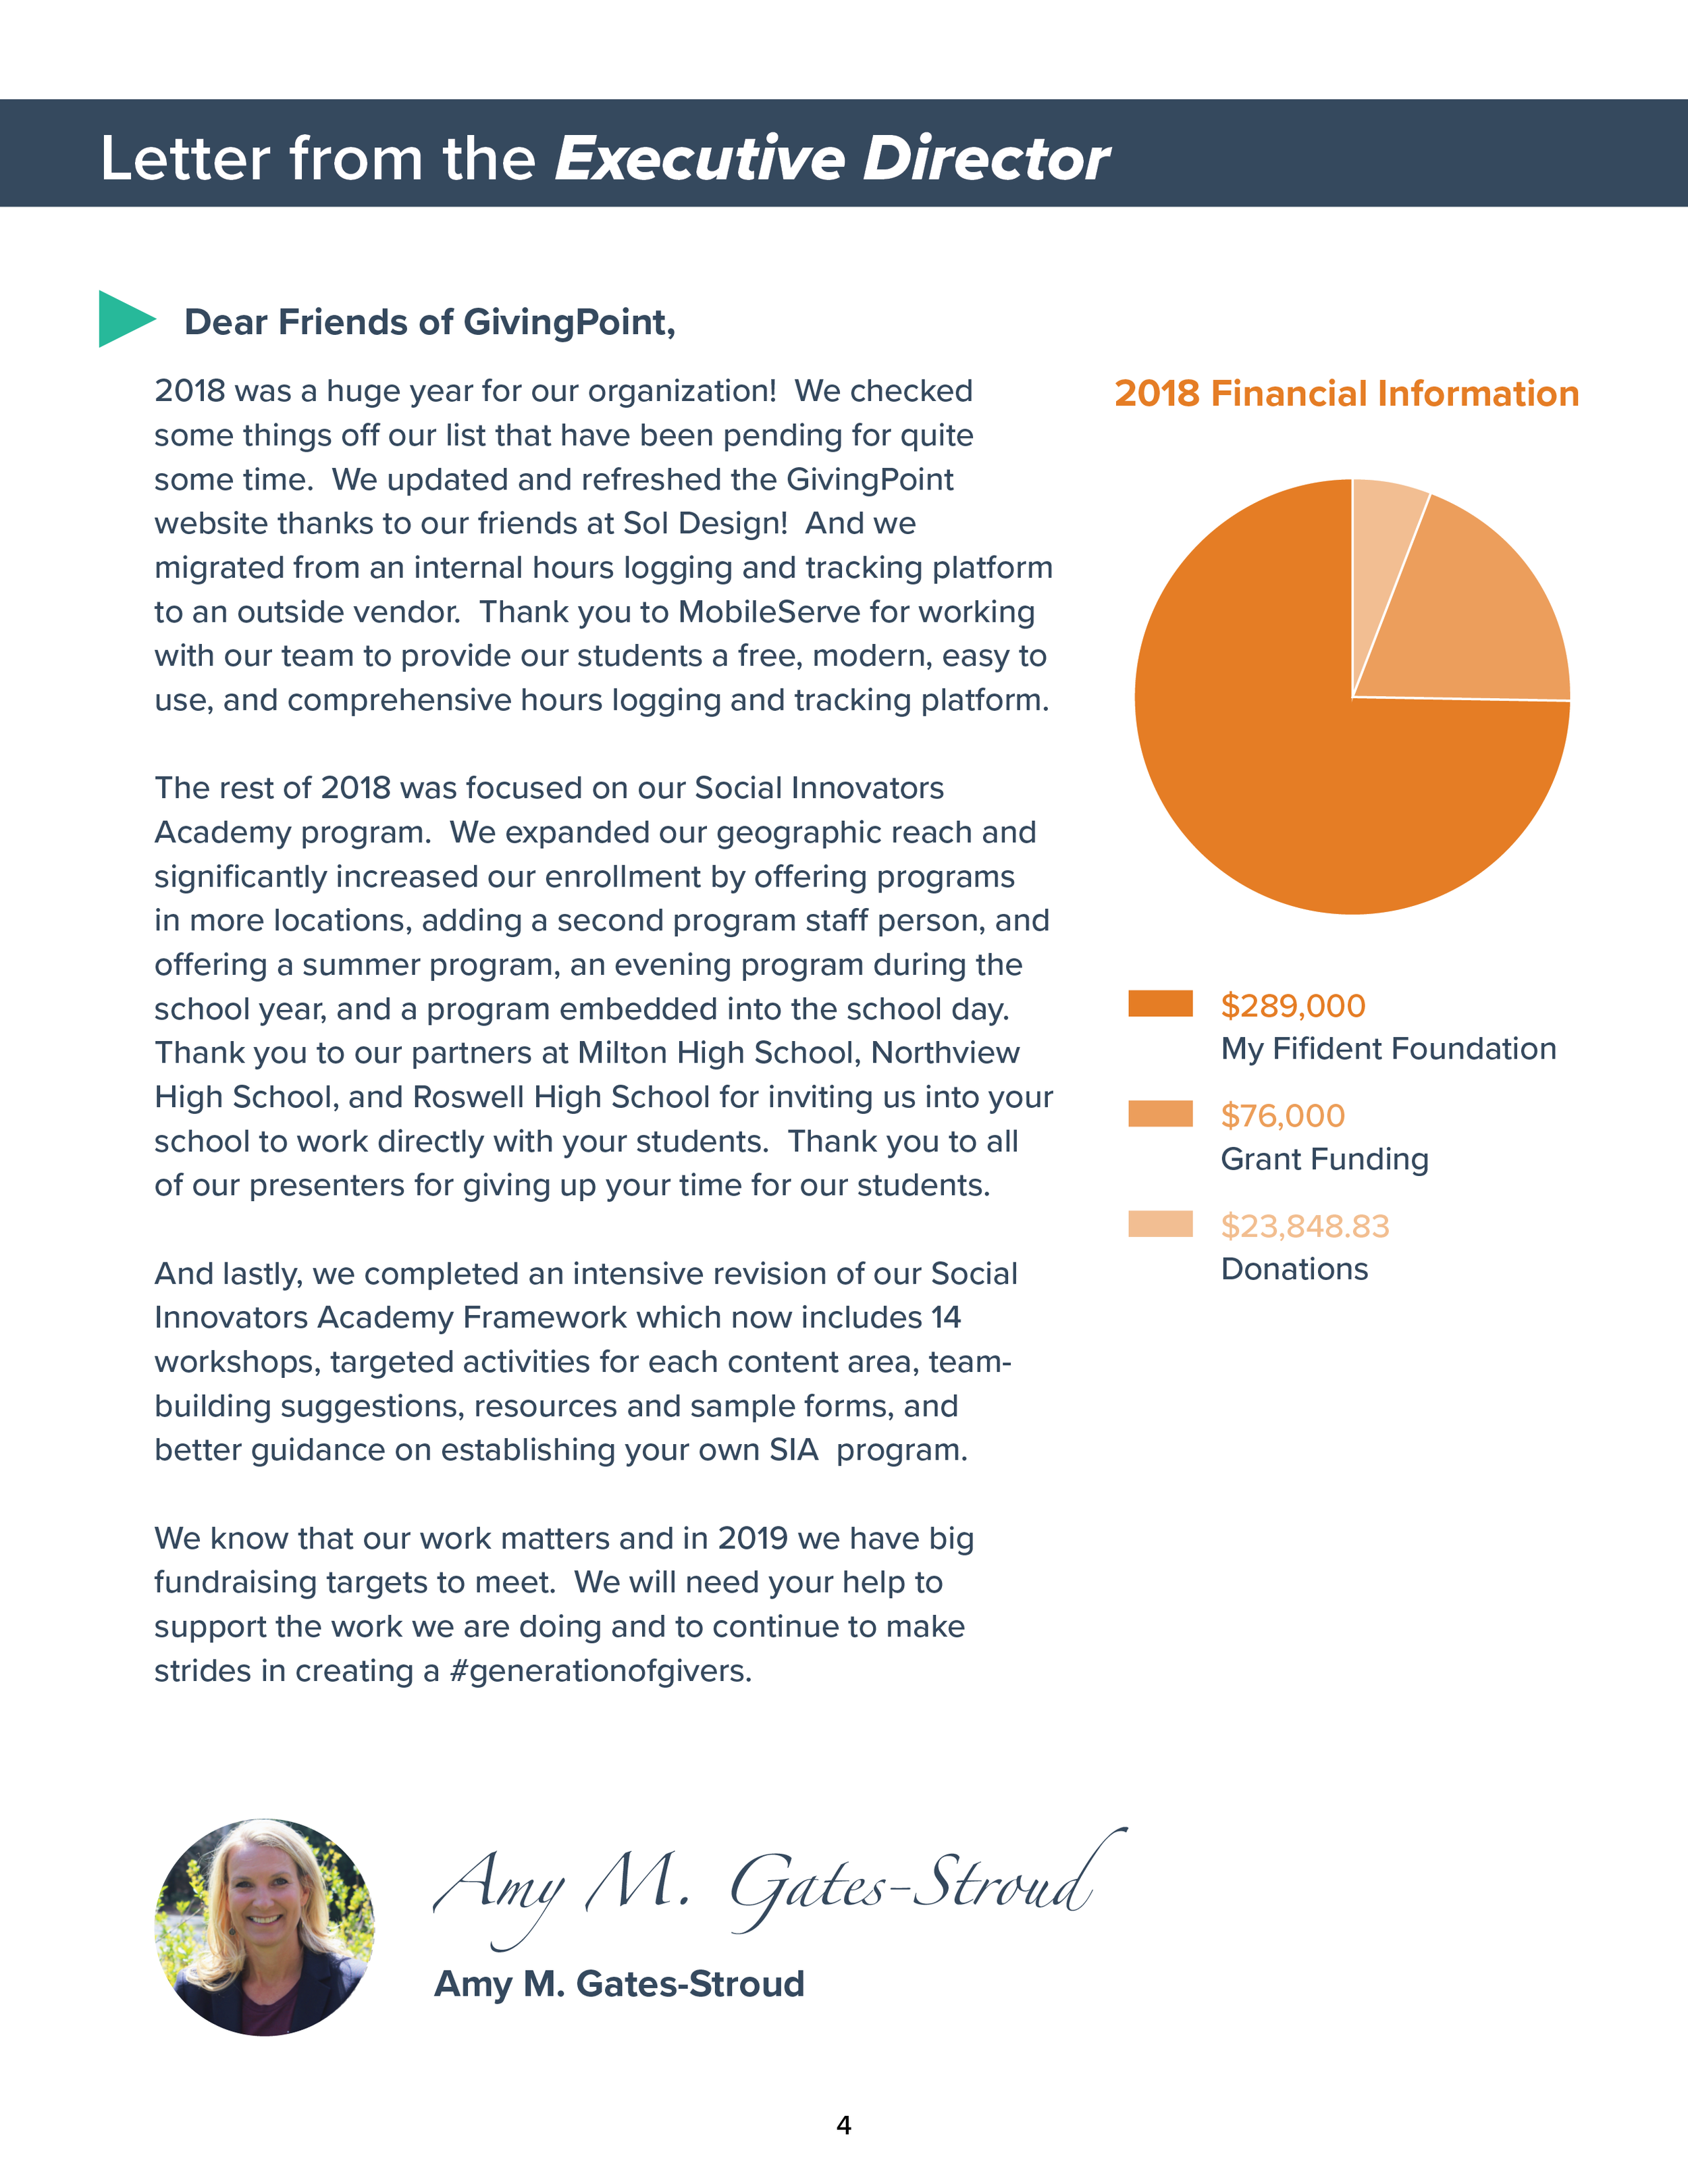 Annual Report_4_223.png